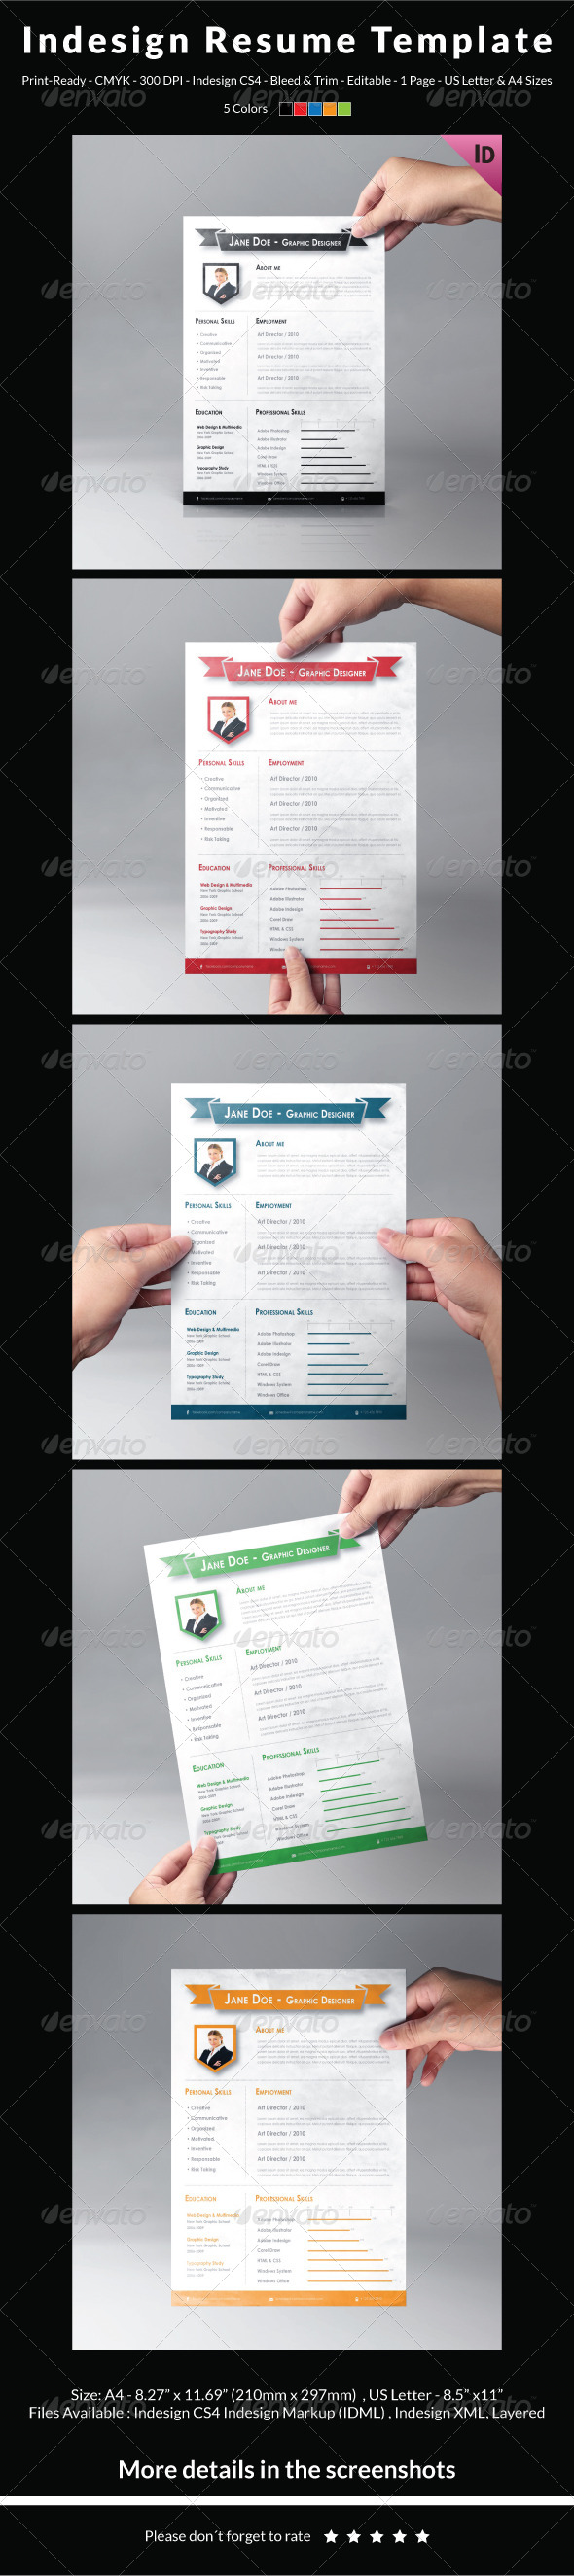 Resume Template InDesign Graphics, Designs & Templates